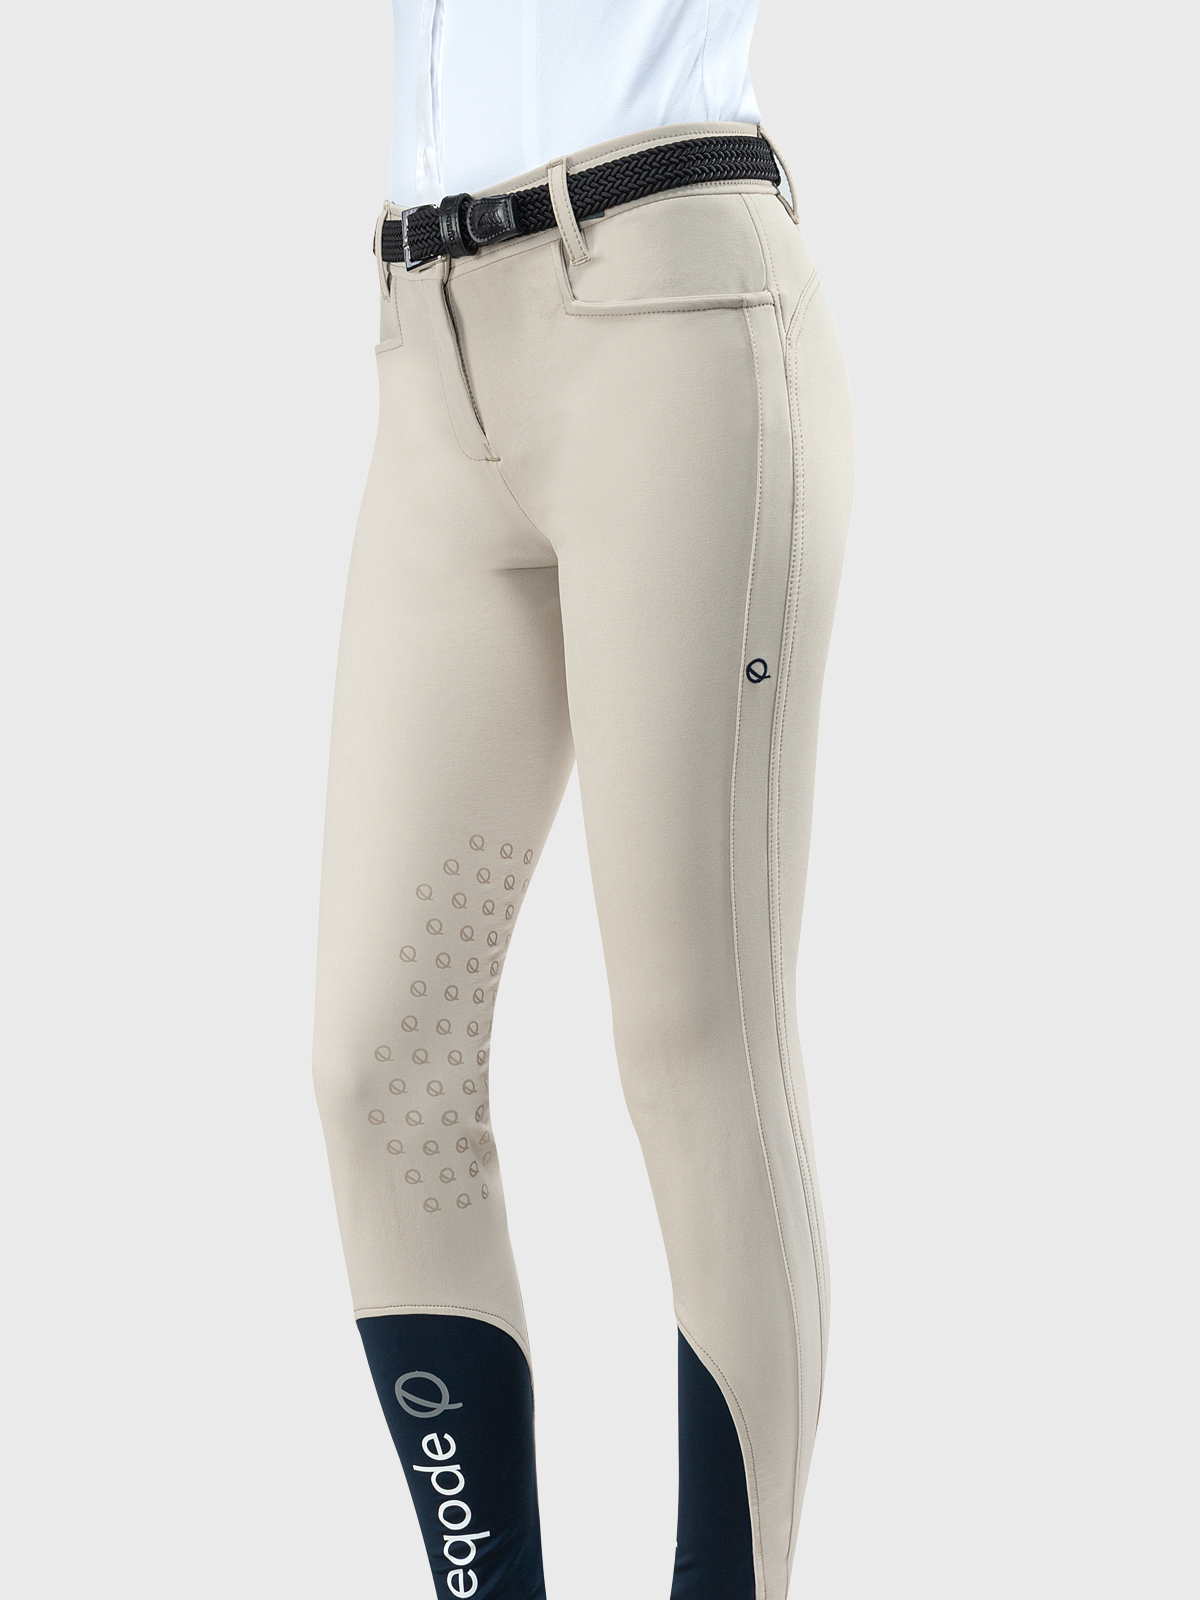 EQODE WOMEN'S BREECHES WITH KNEE GRIP 6